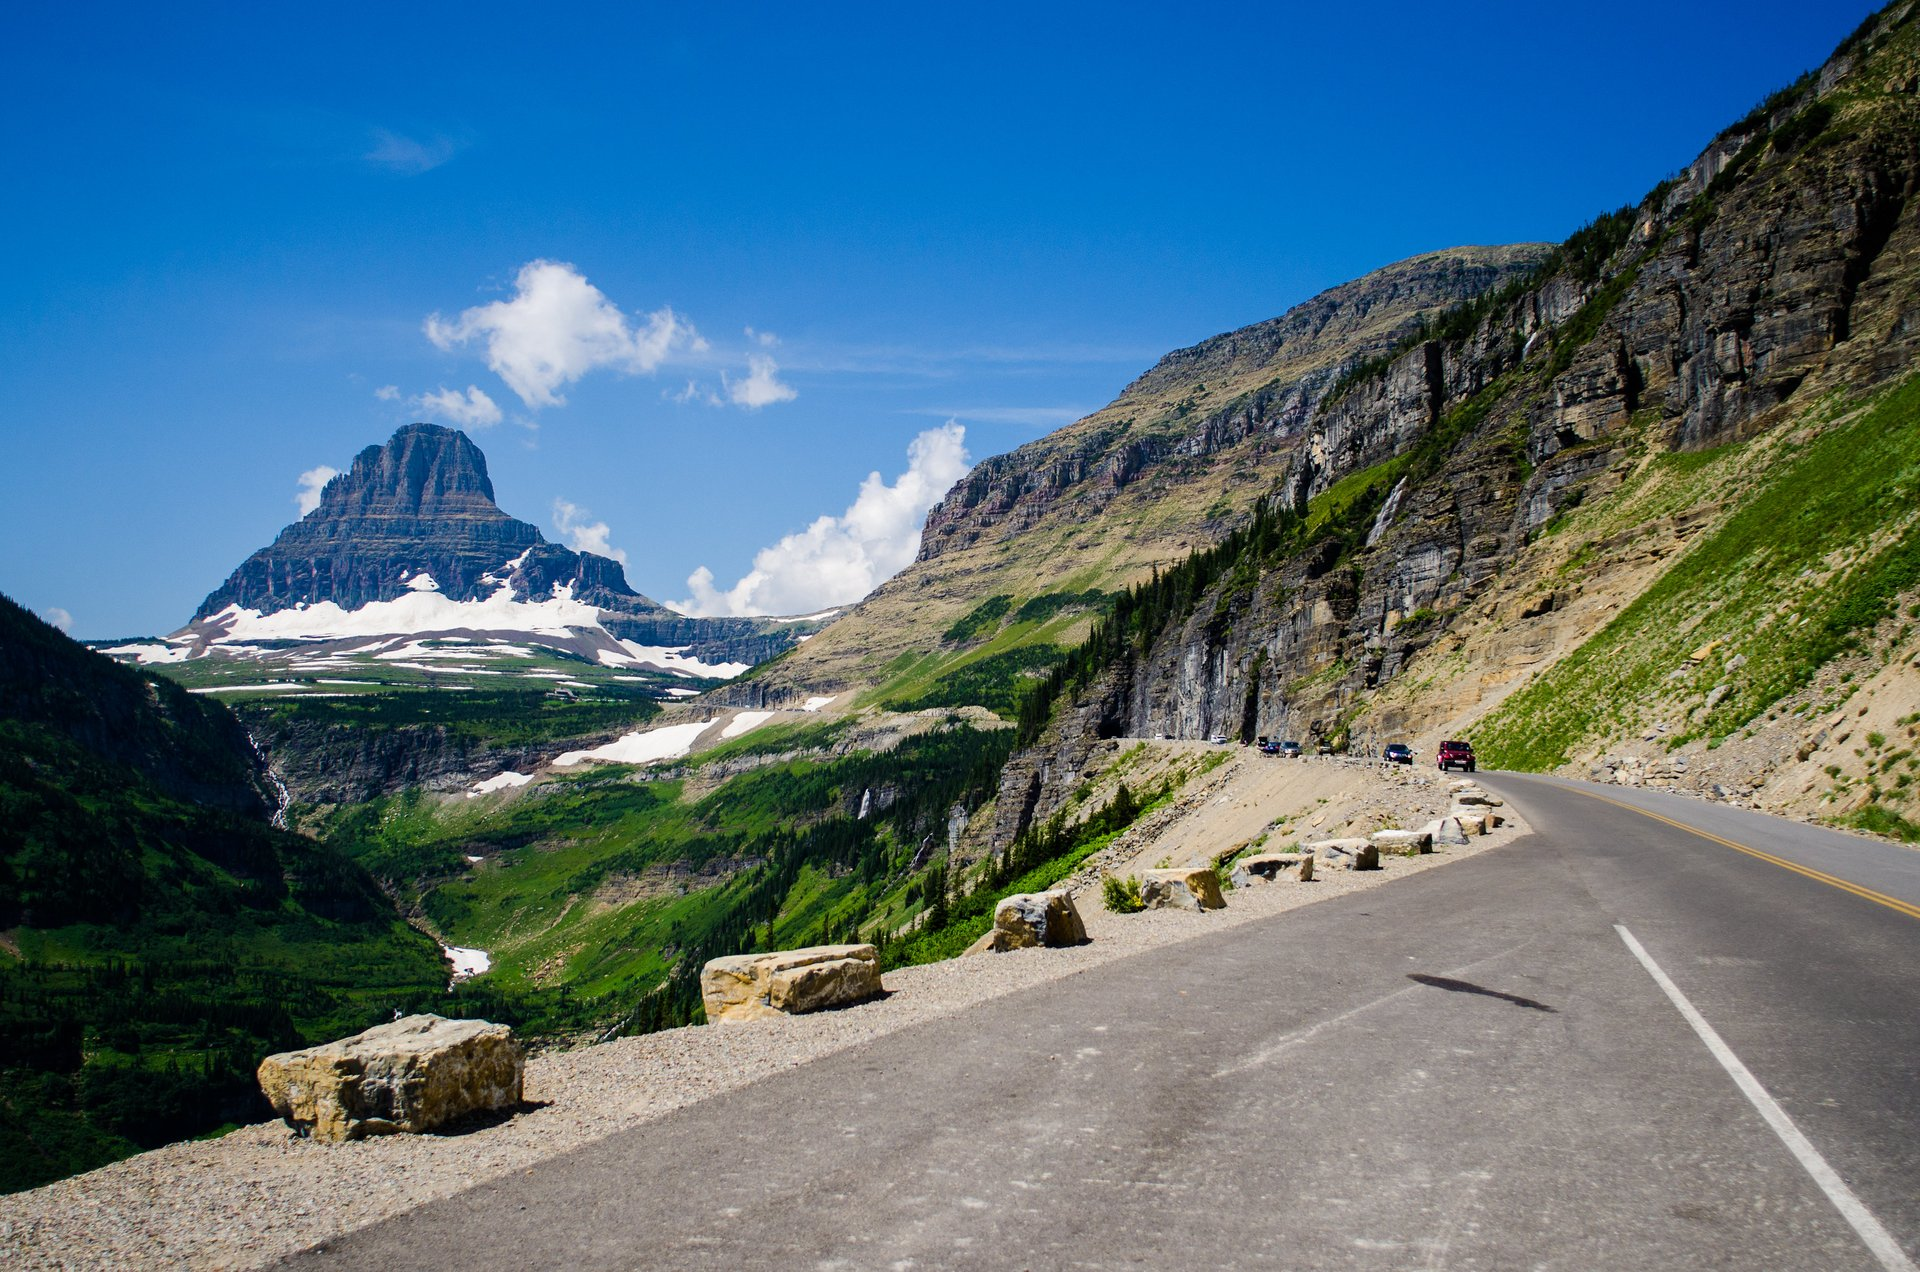 Approaching Logan Pass with views over the Clements Mountain 2020